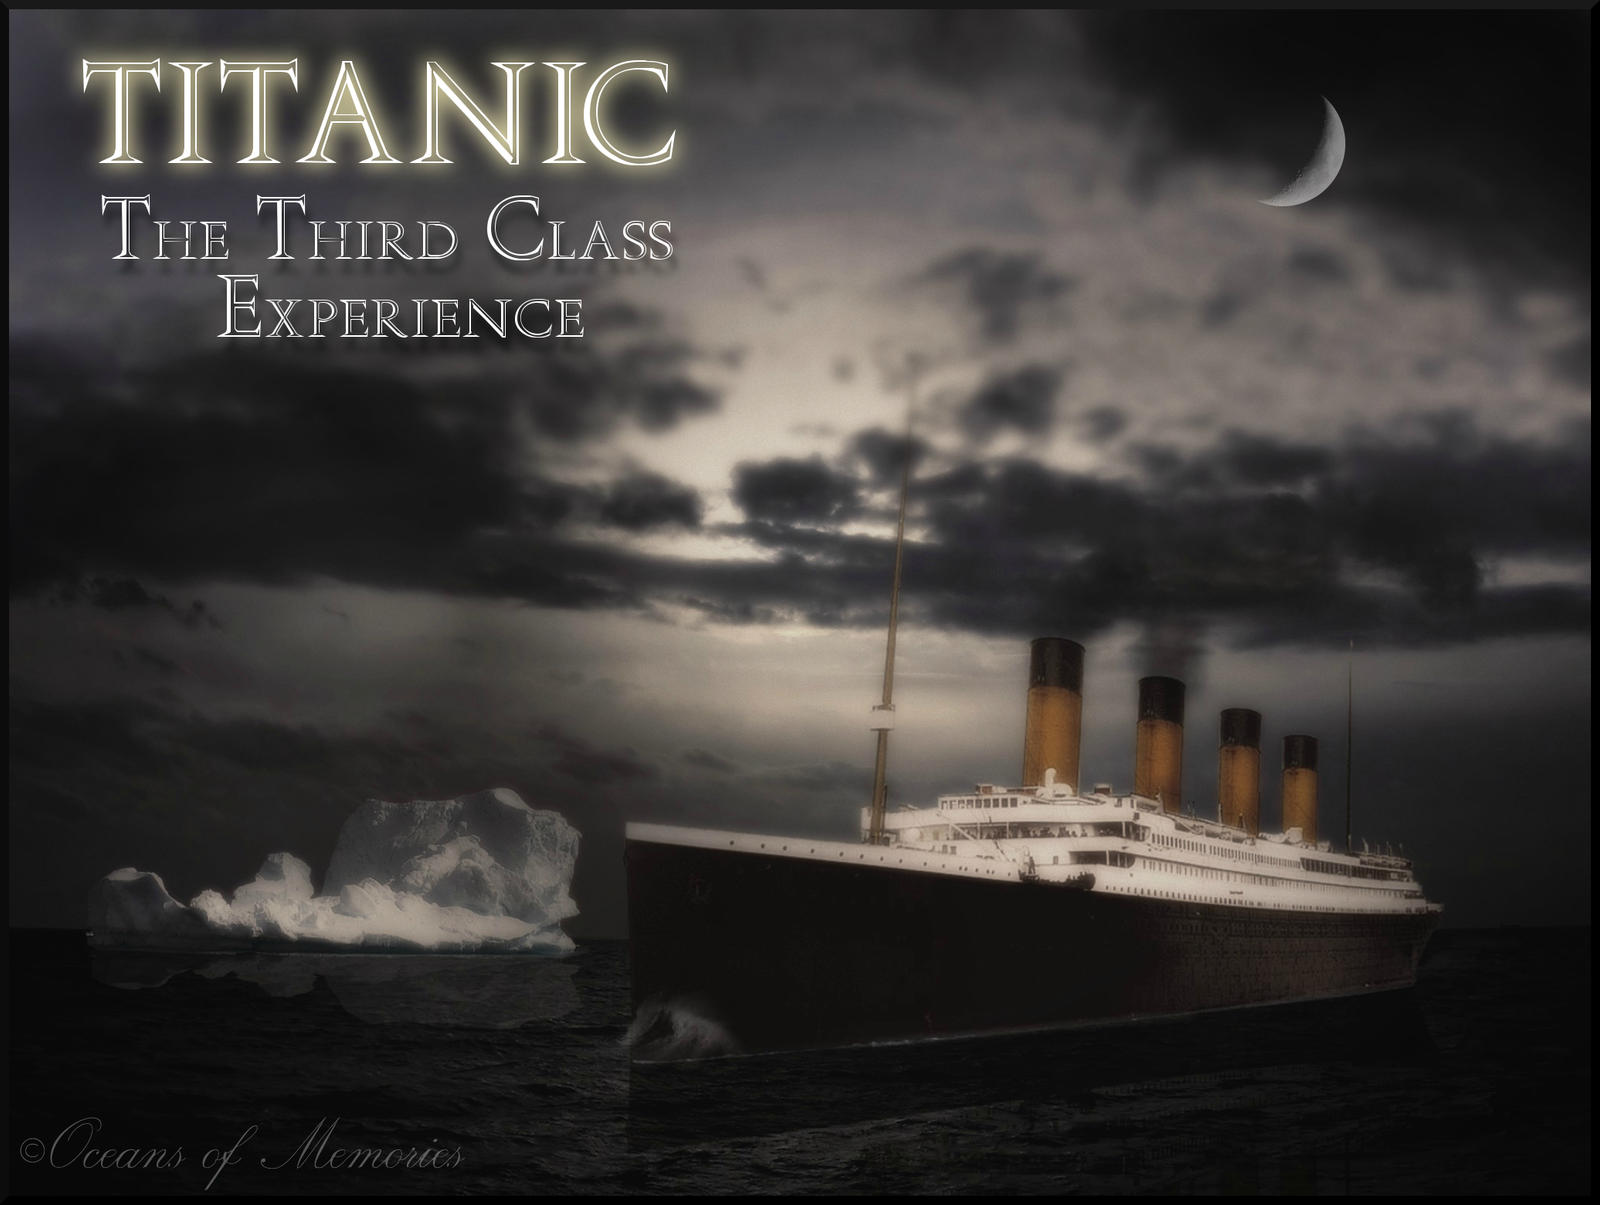 Titanic The Third Class Experience Film Poster By Rms